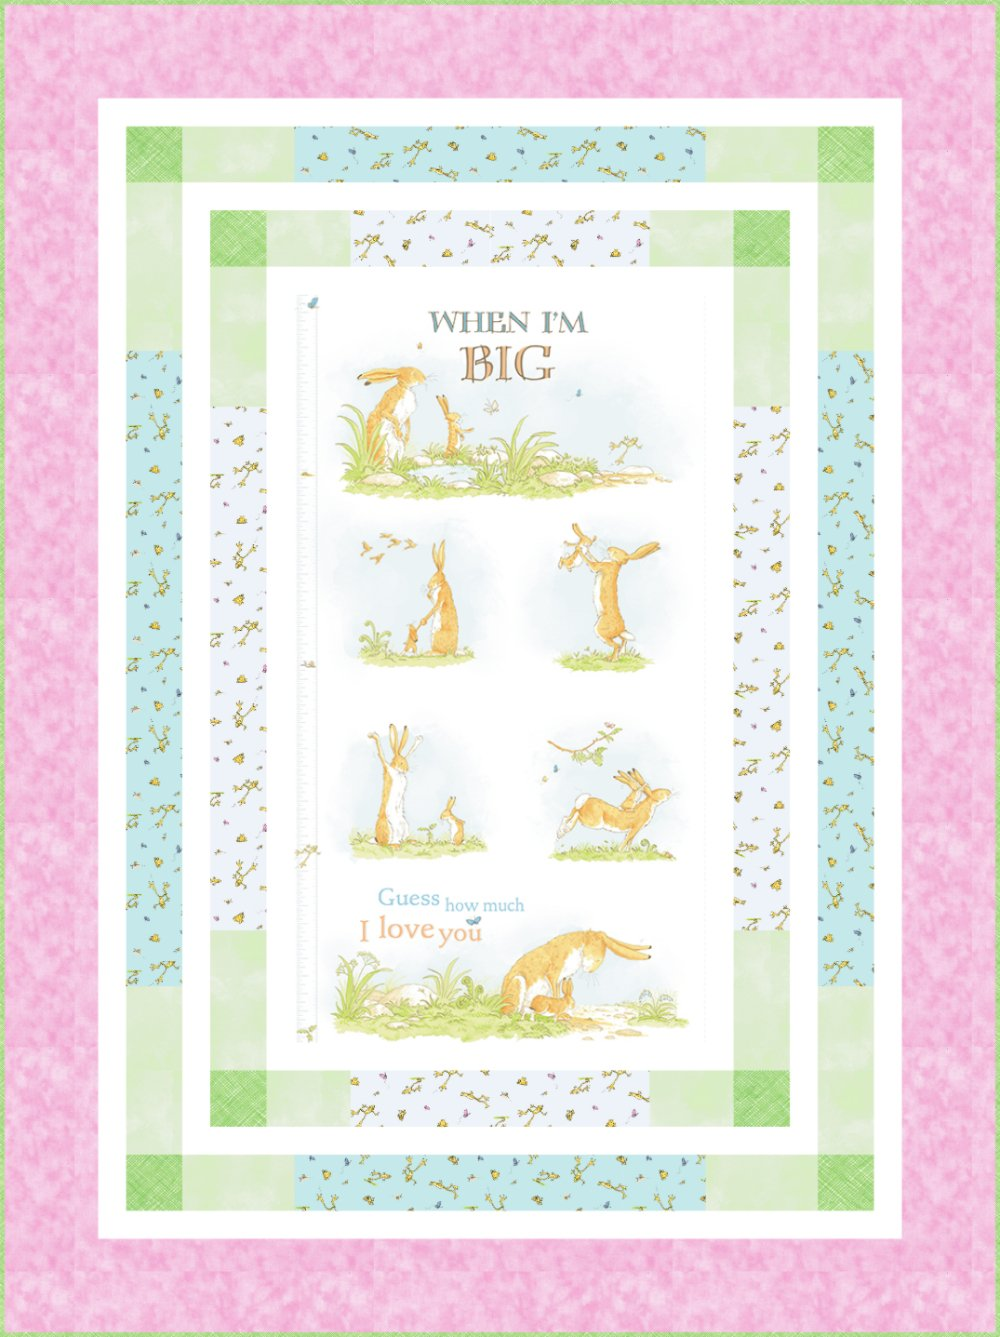 When I'm Big Panel Quilt Kit (53.5 x 71.5) - Pink